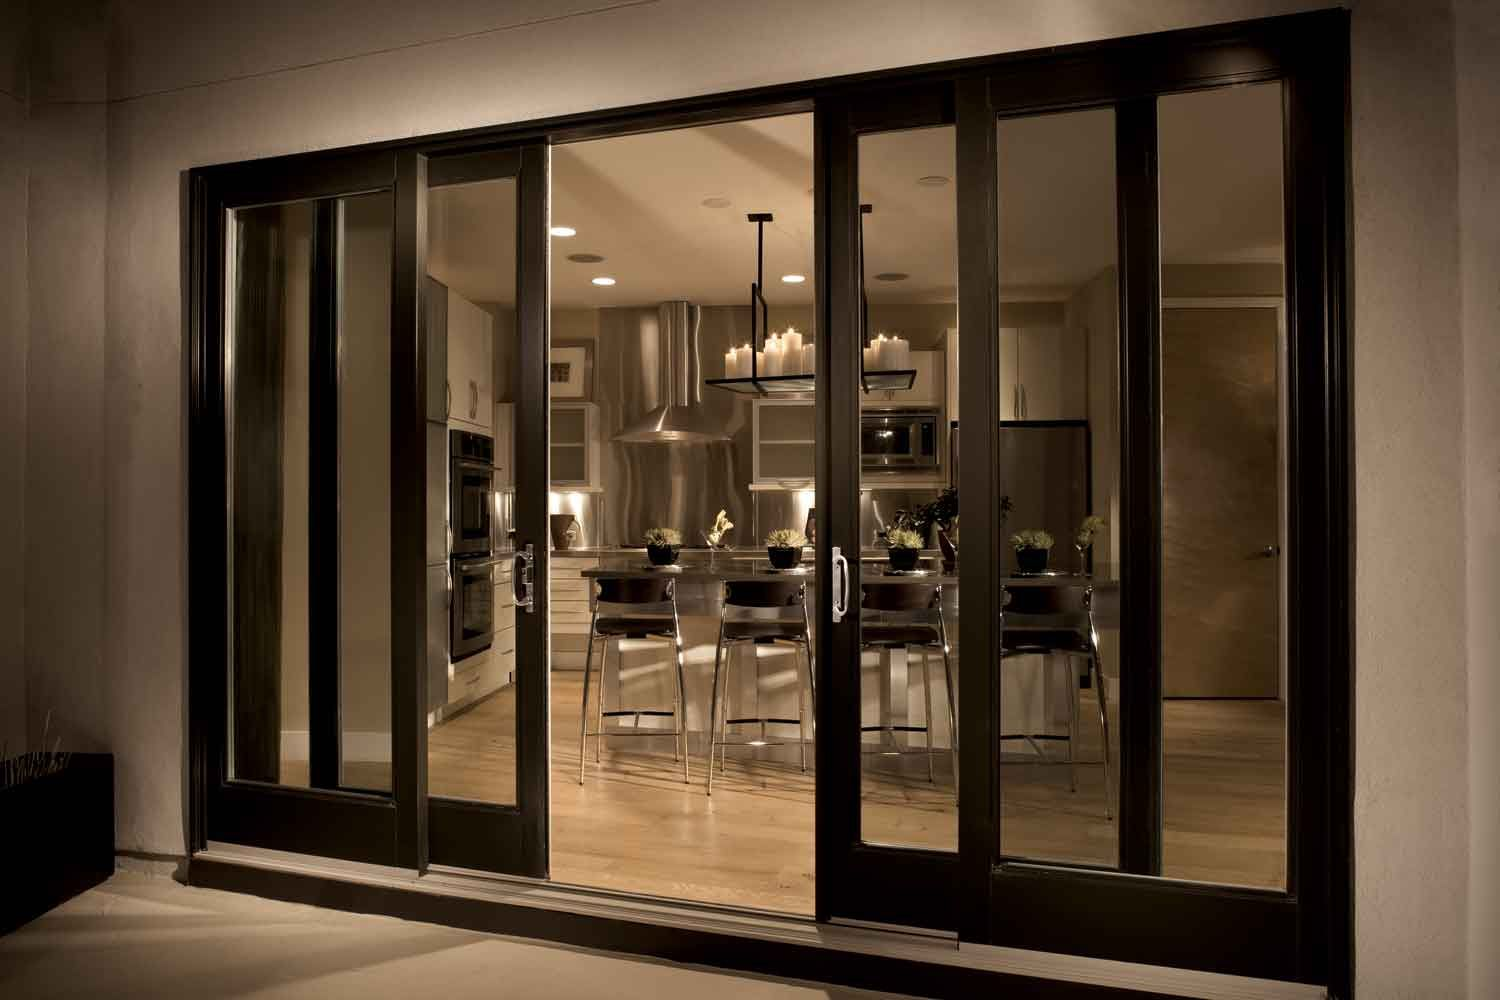 Patio French Patio Door With Screen With 2 Panel Doors And Wooden